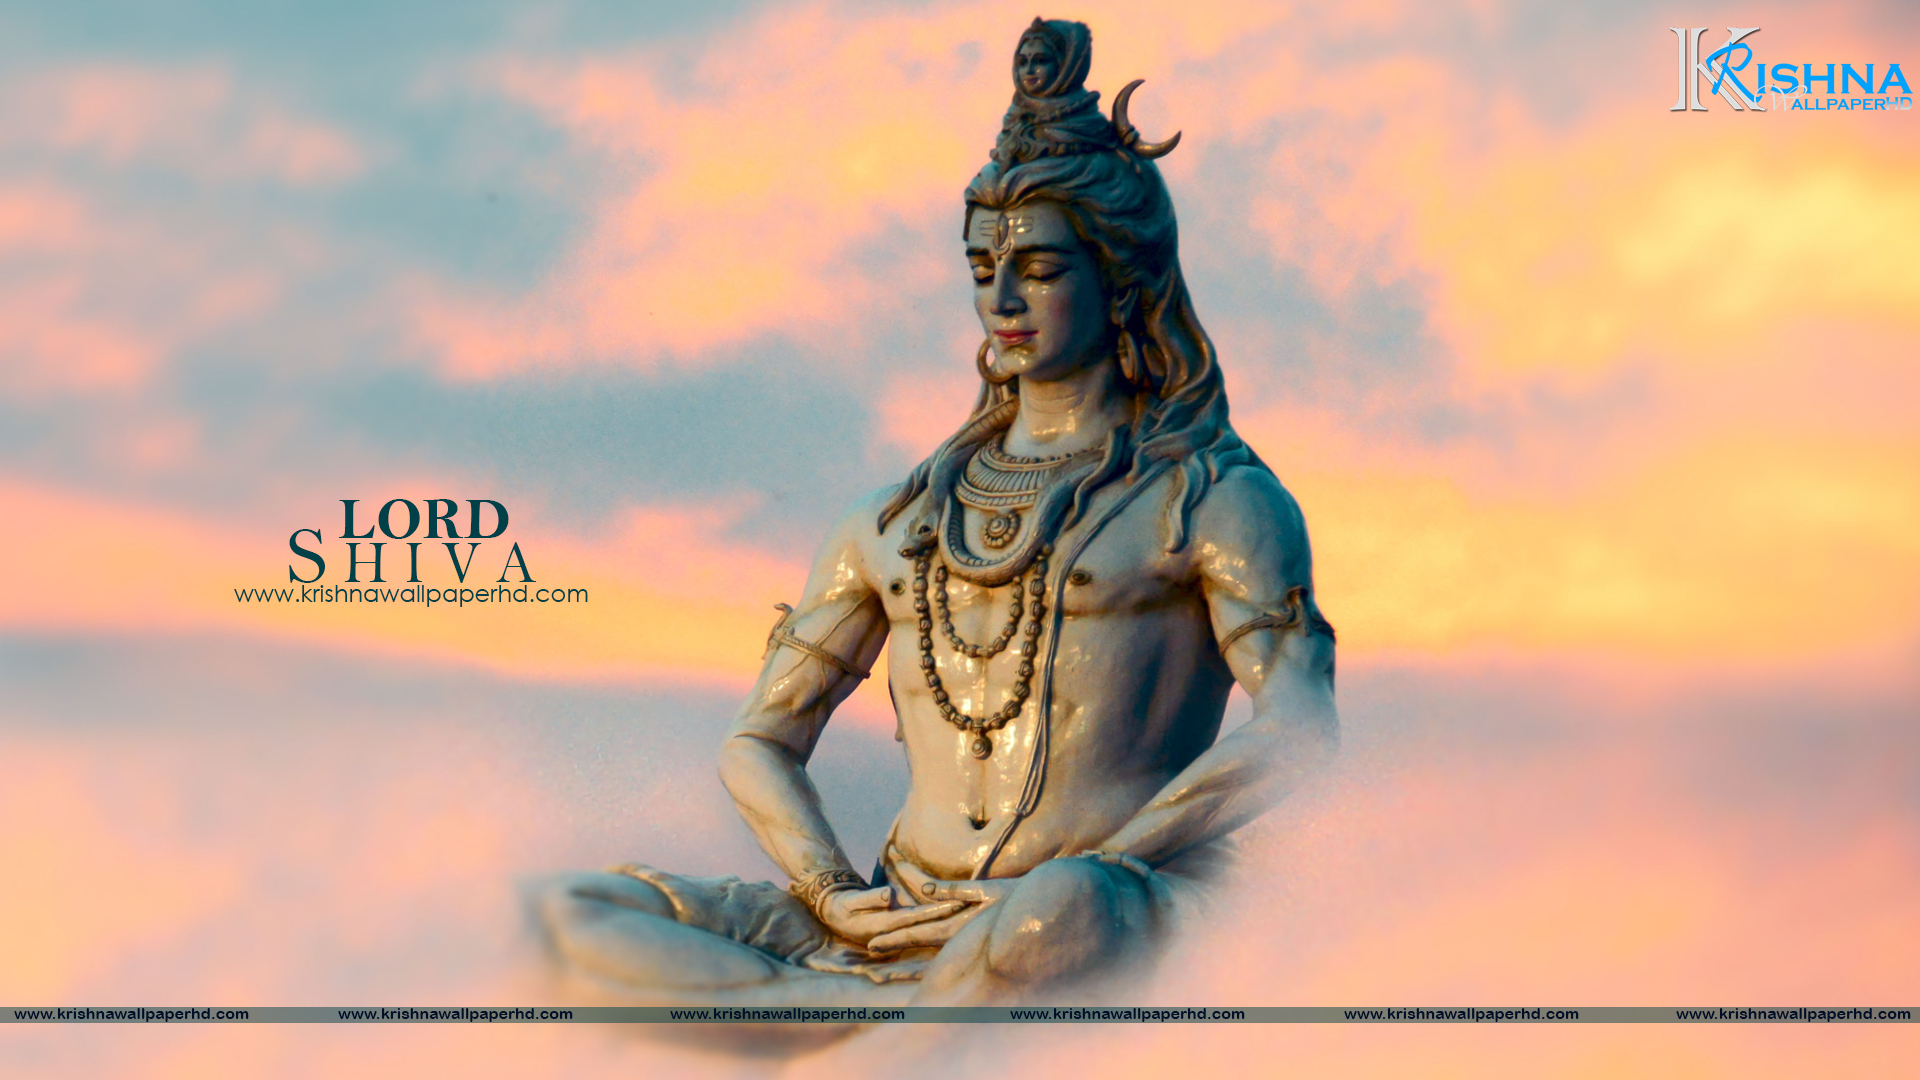 Statue Wallpaper of Lord Shiva in Full HD Size Free Download